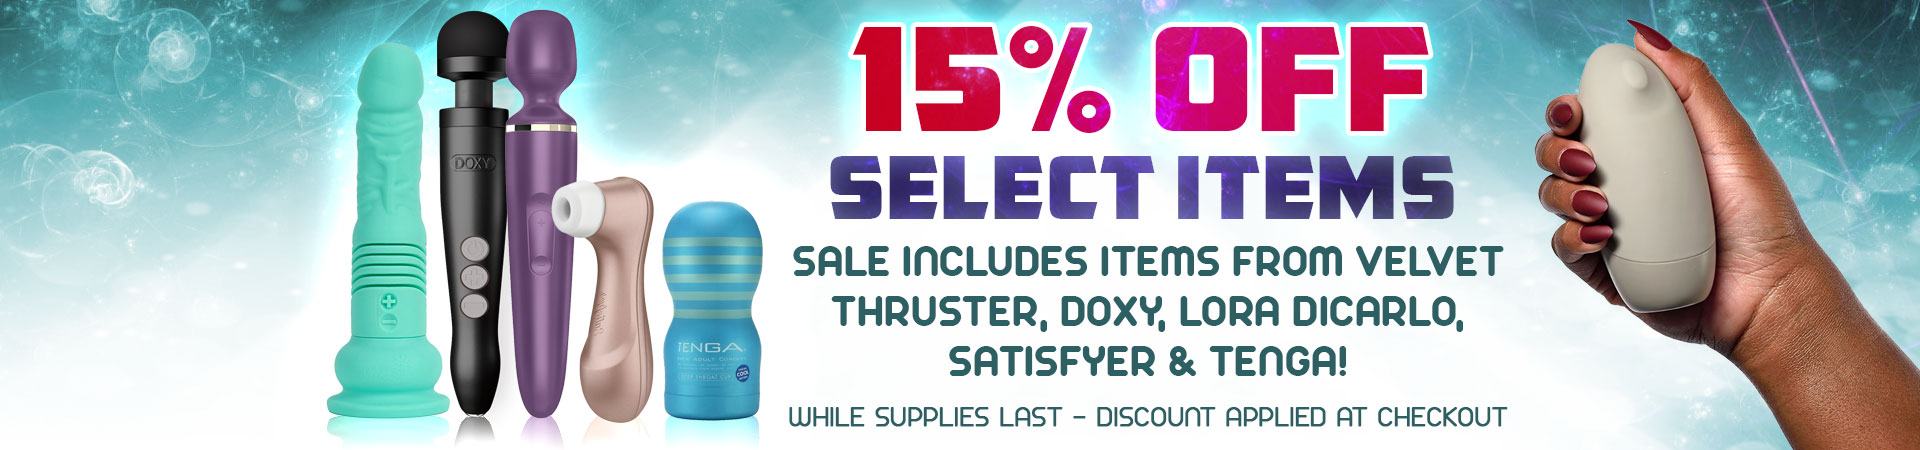 15% Off Select Items!